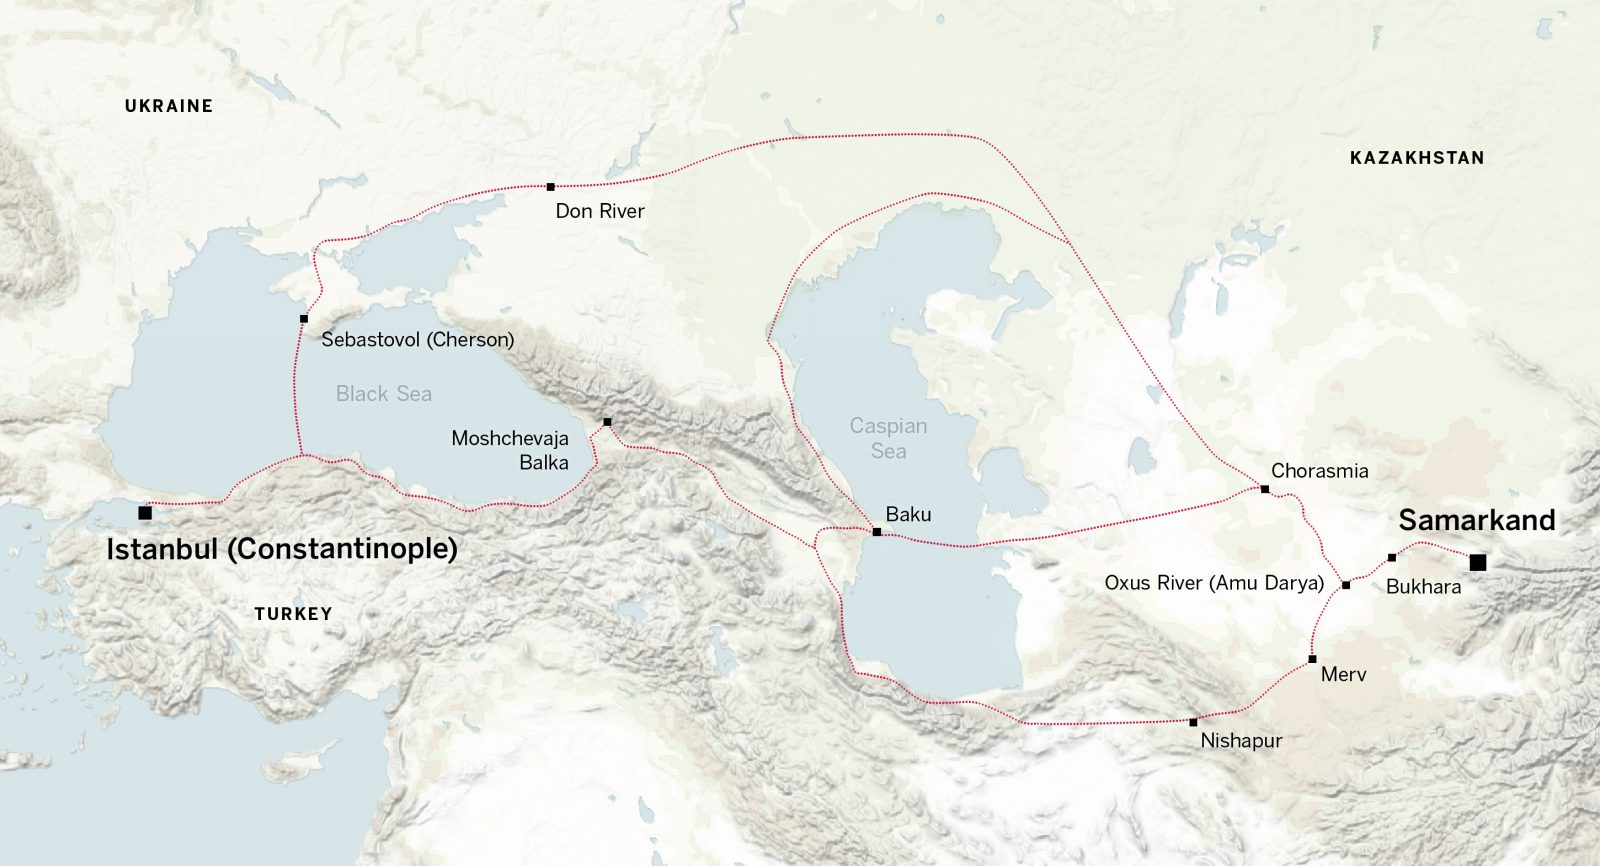 The Sogdians tried avoid Sasanian Iran by using less straightforward routes to Constantinople